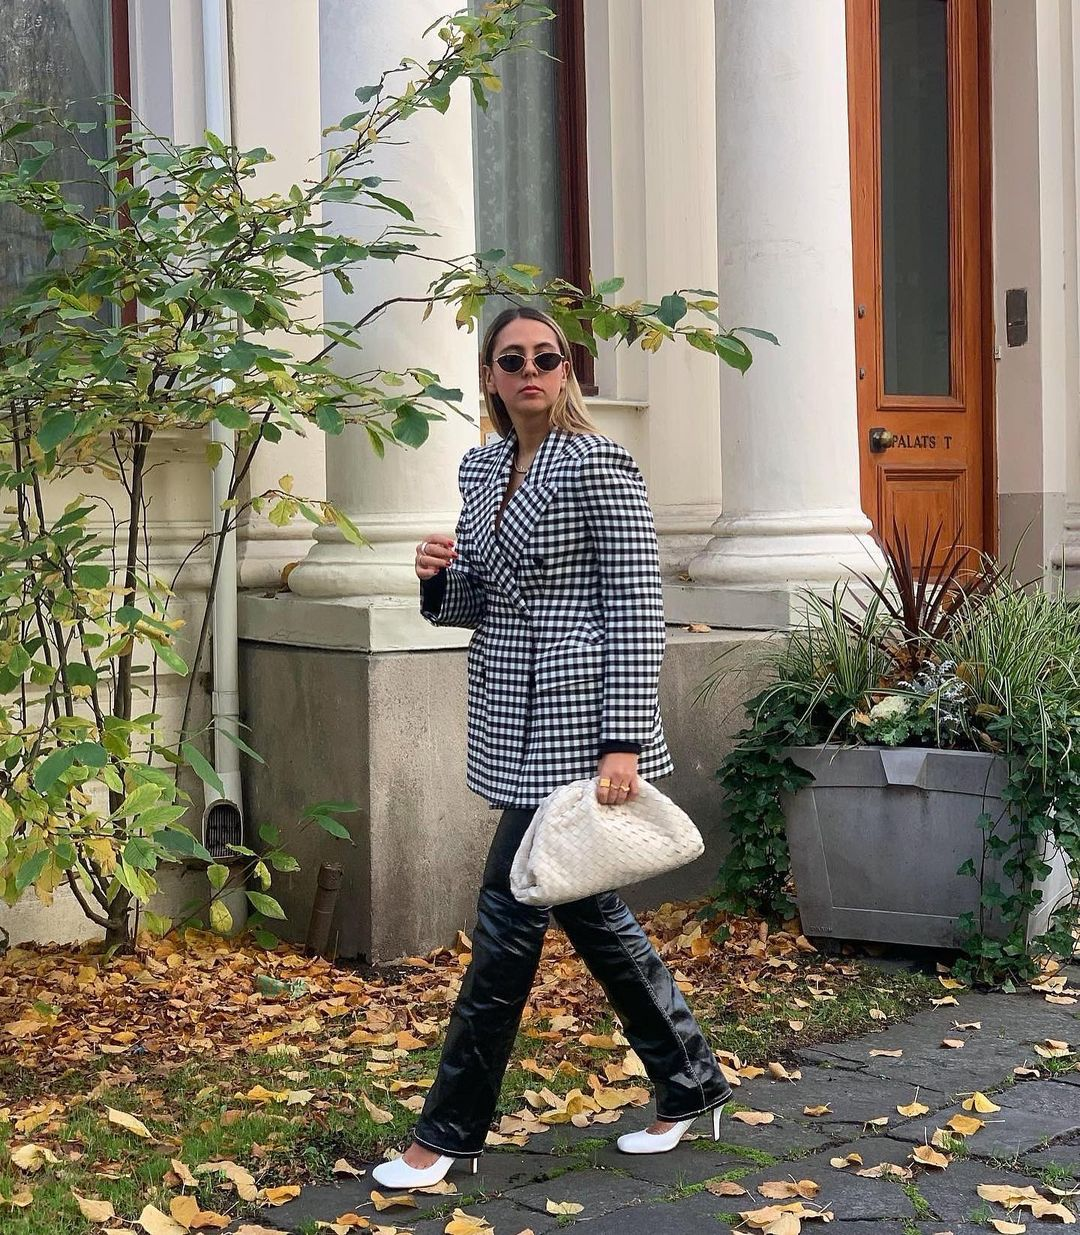 hanna-mw-balenciaga-vichy-hourglass-double-breasted-checked-jacket-instagram